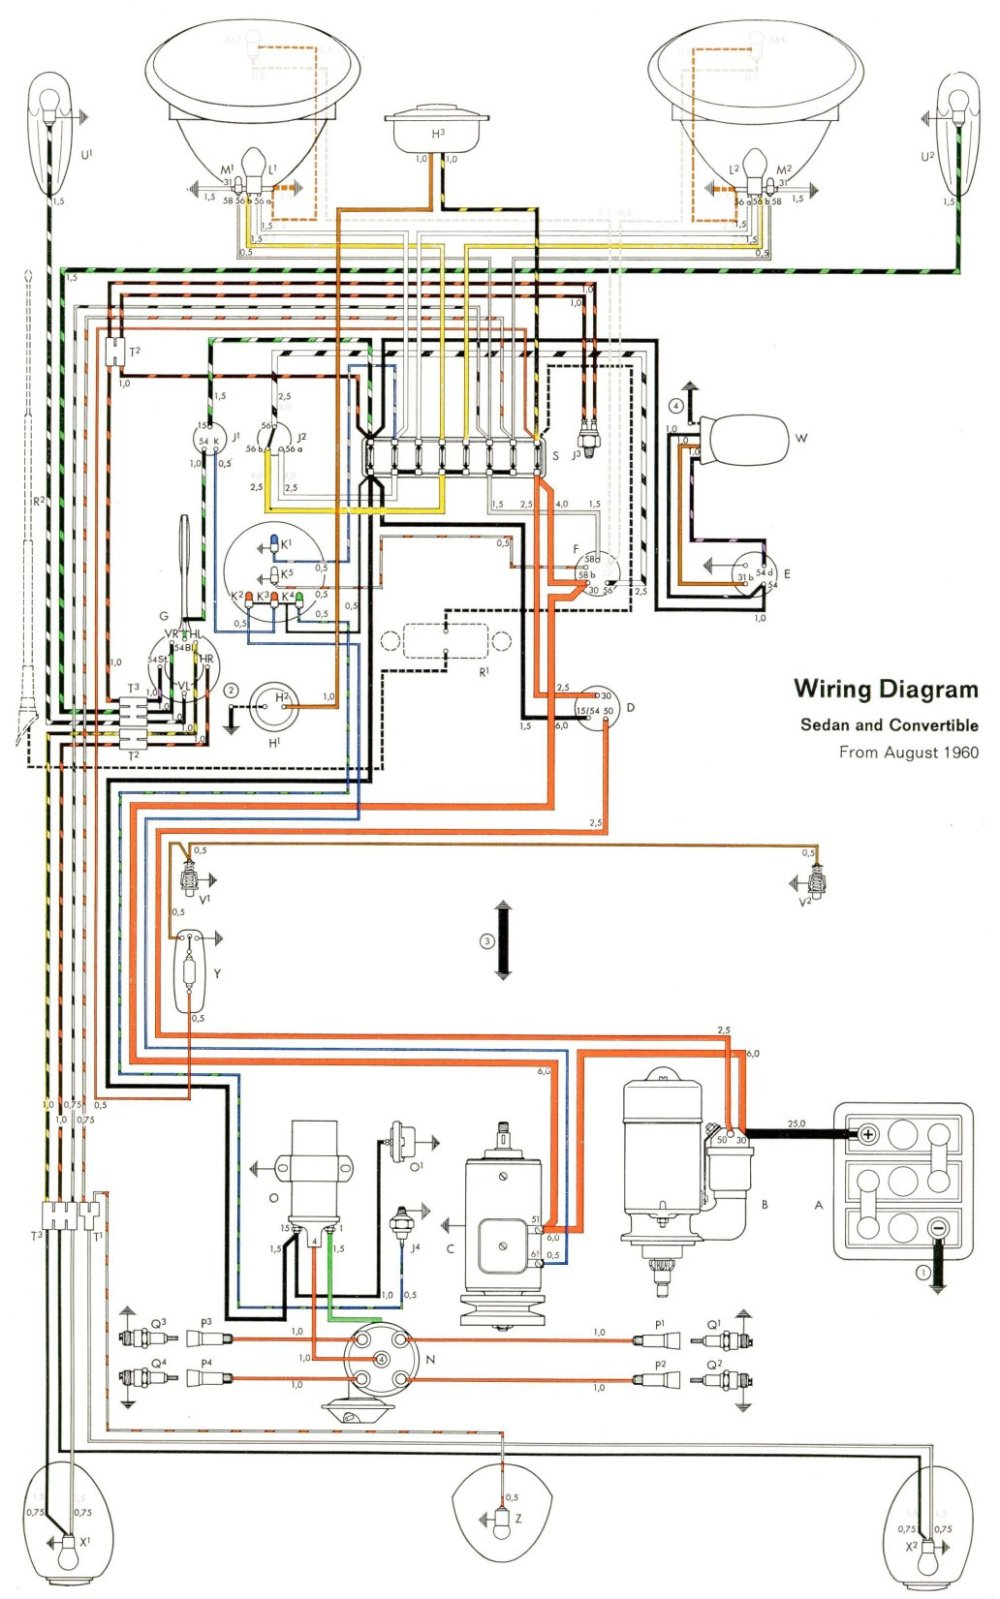 medium resolution of 1949 vw wiring diagram wiring diagram third level1949 vw wiring diagram wiring diagram todays ammeter gauge